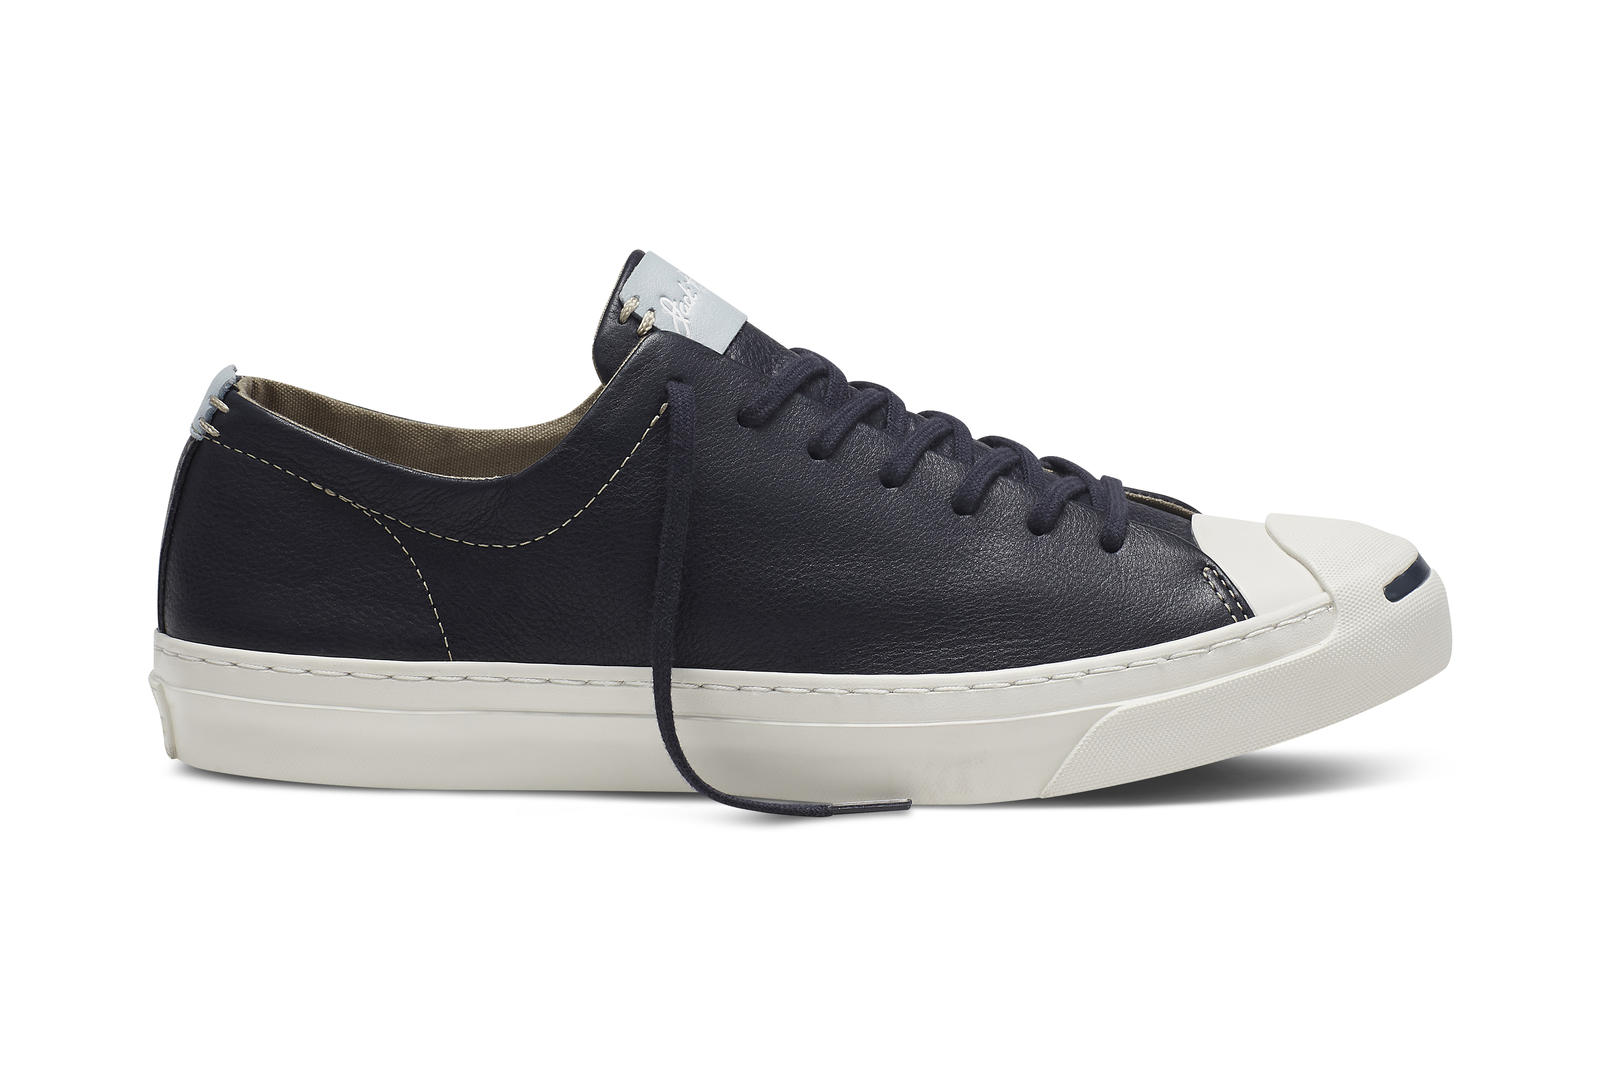 Converse Jack Purcell Remastered In Tumbled Leather - Nike